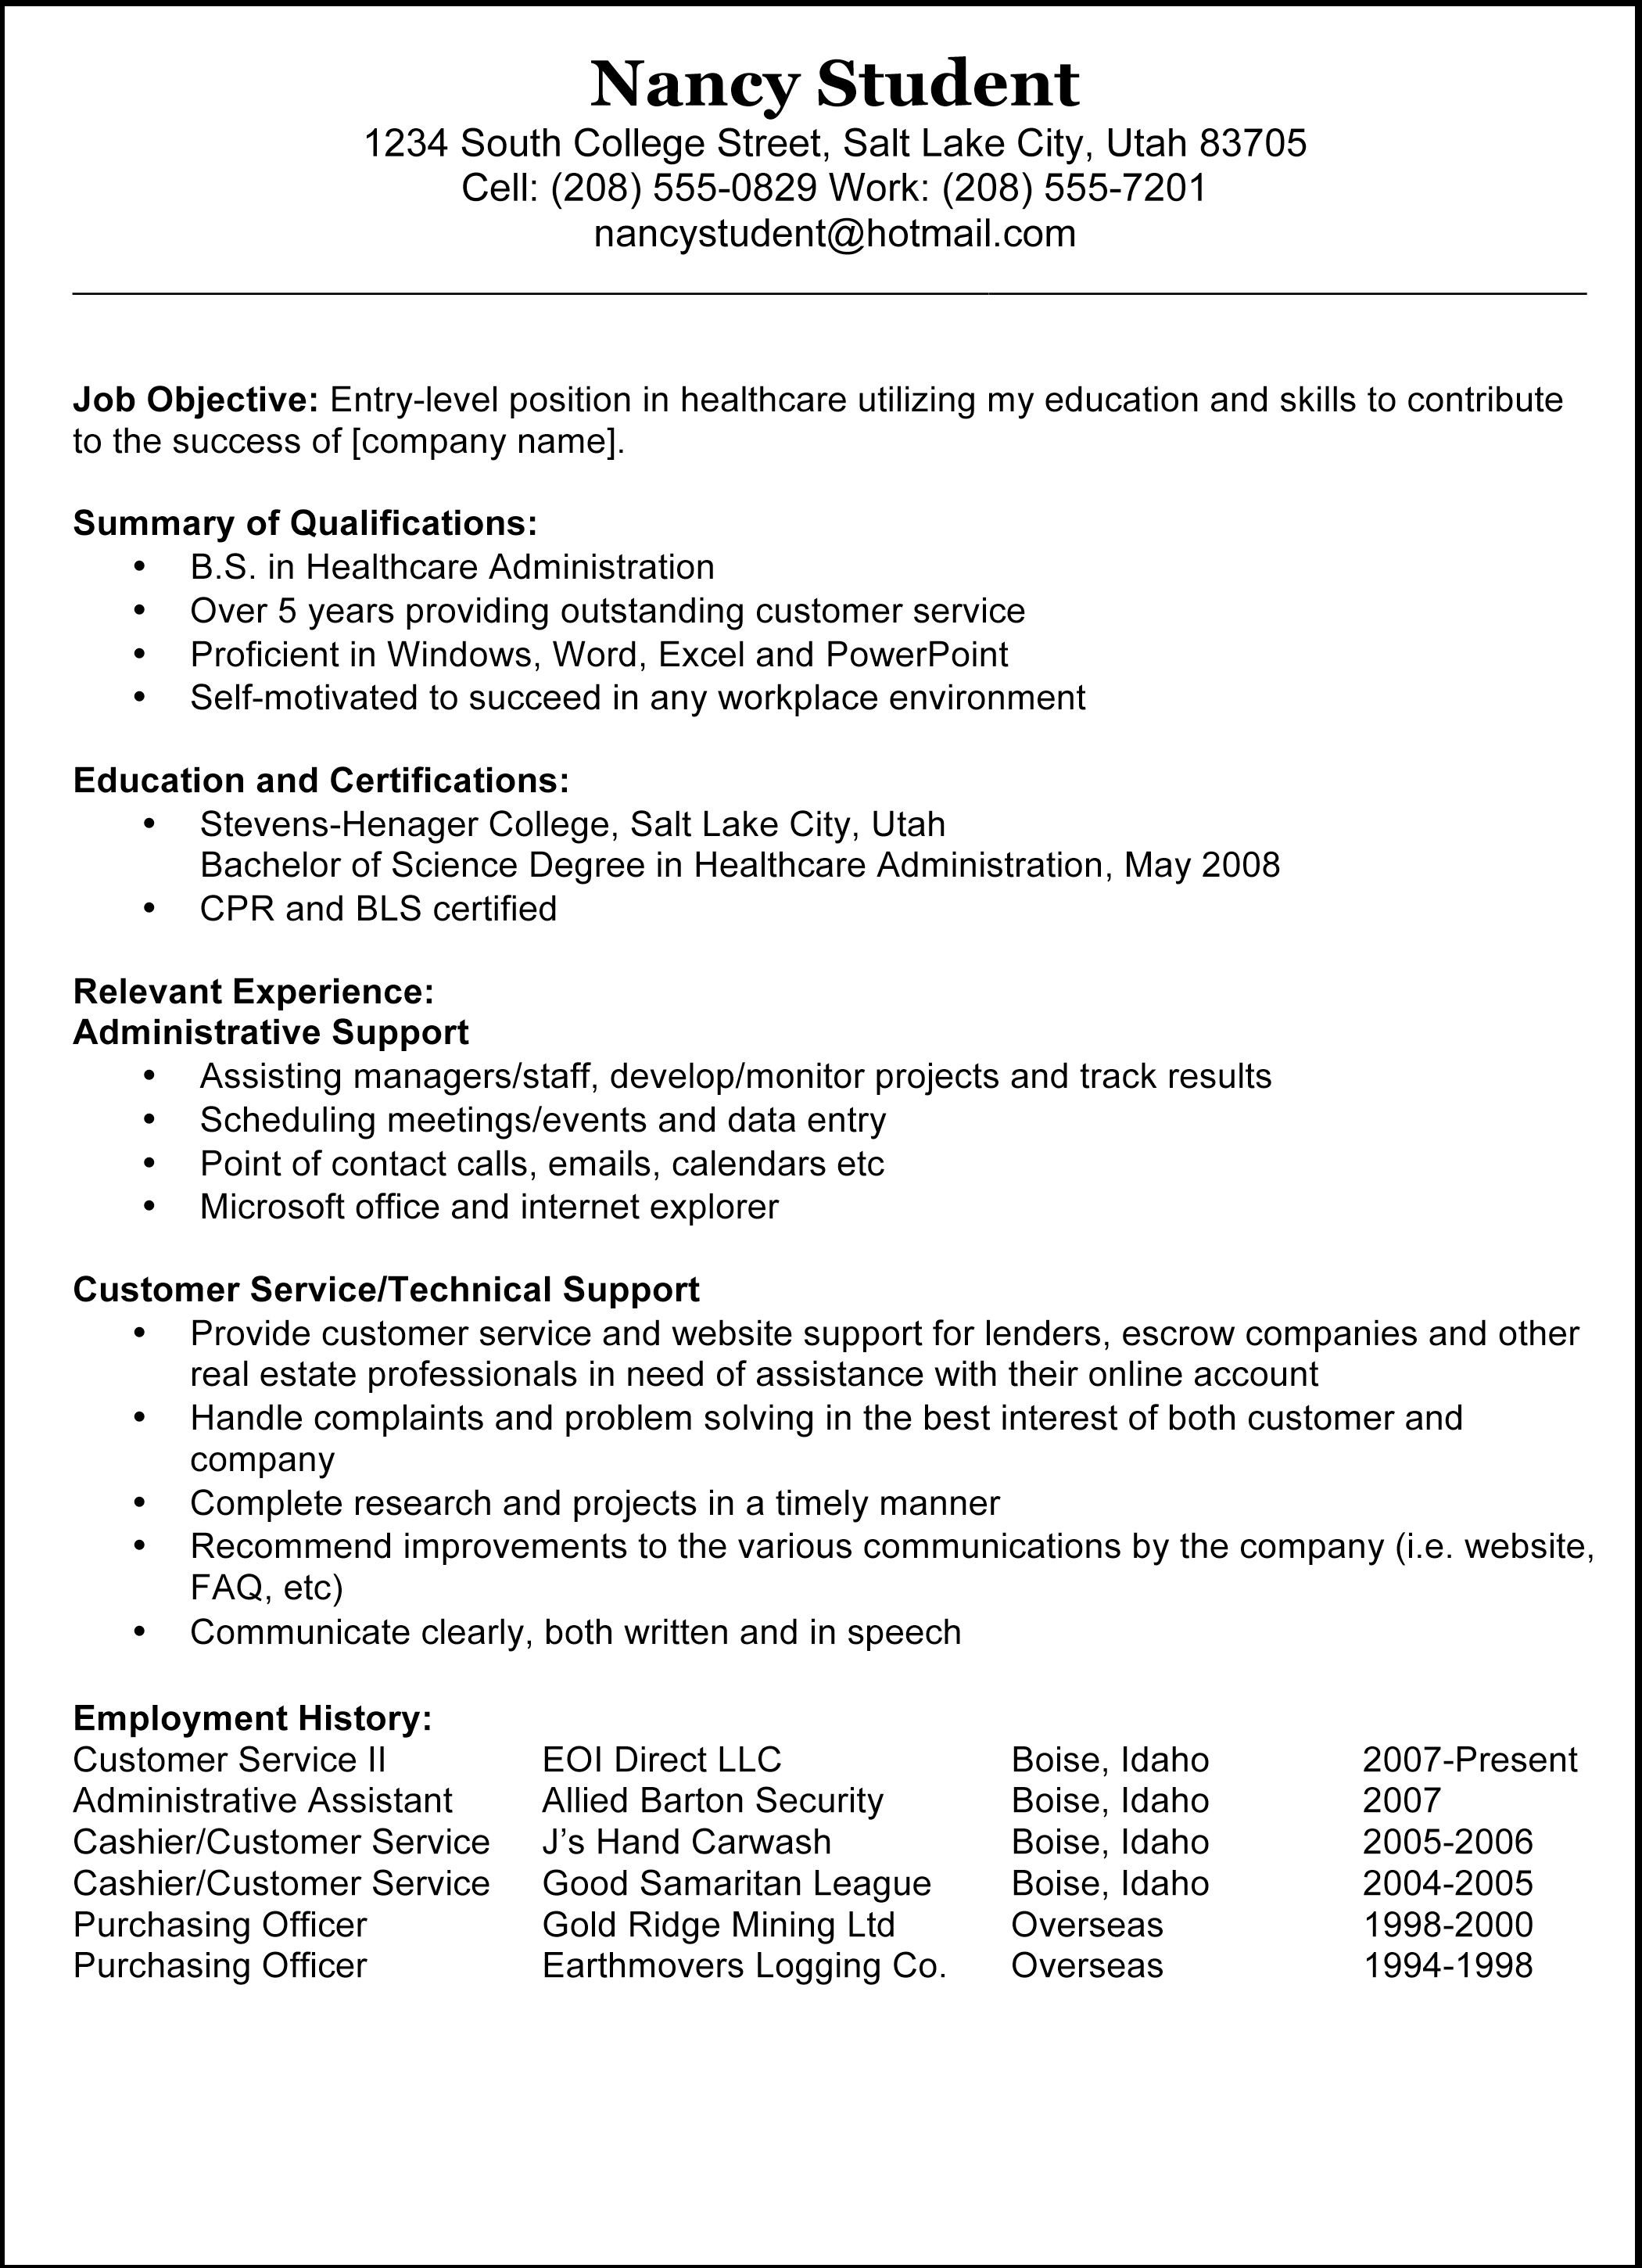 sample resumes examples Colombchristopherbathumco